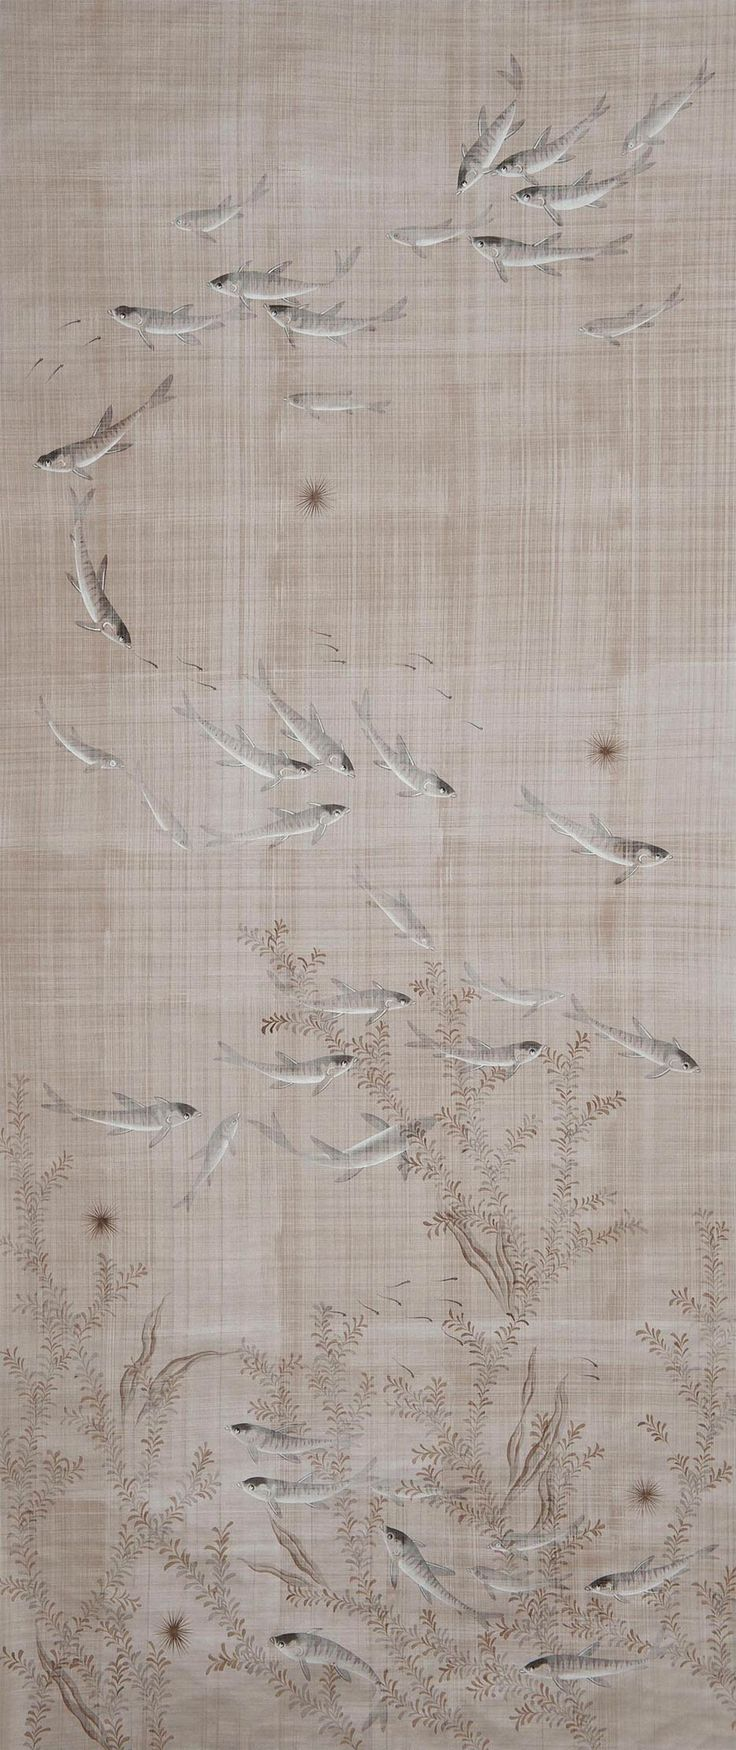 pleasure of fishes | Fromental